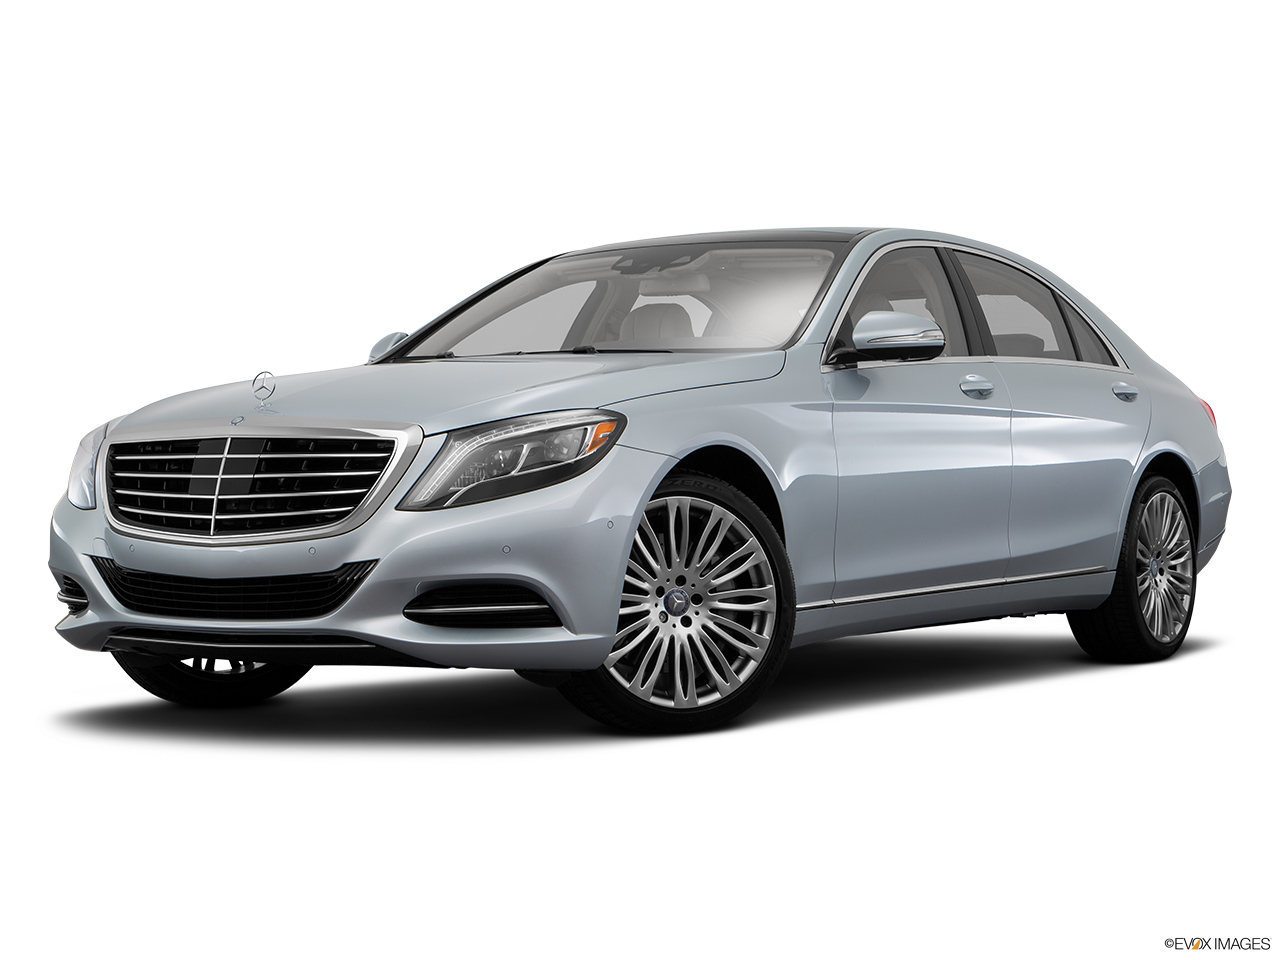 Car pictures list for mercedes benz s class 2016 s 600 l for Mercedes benz list of cars